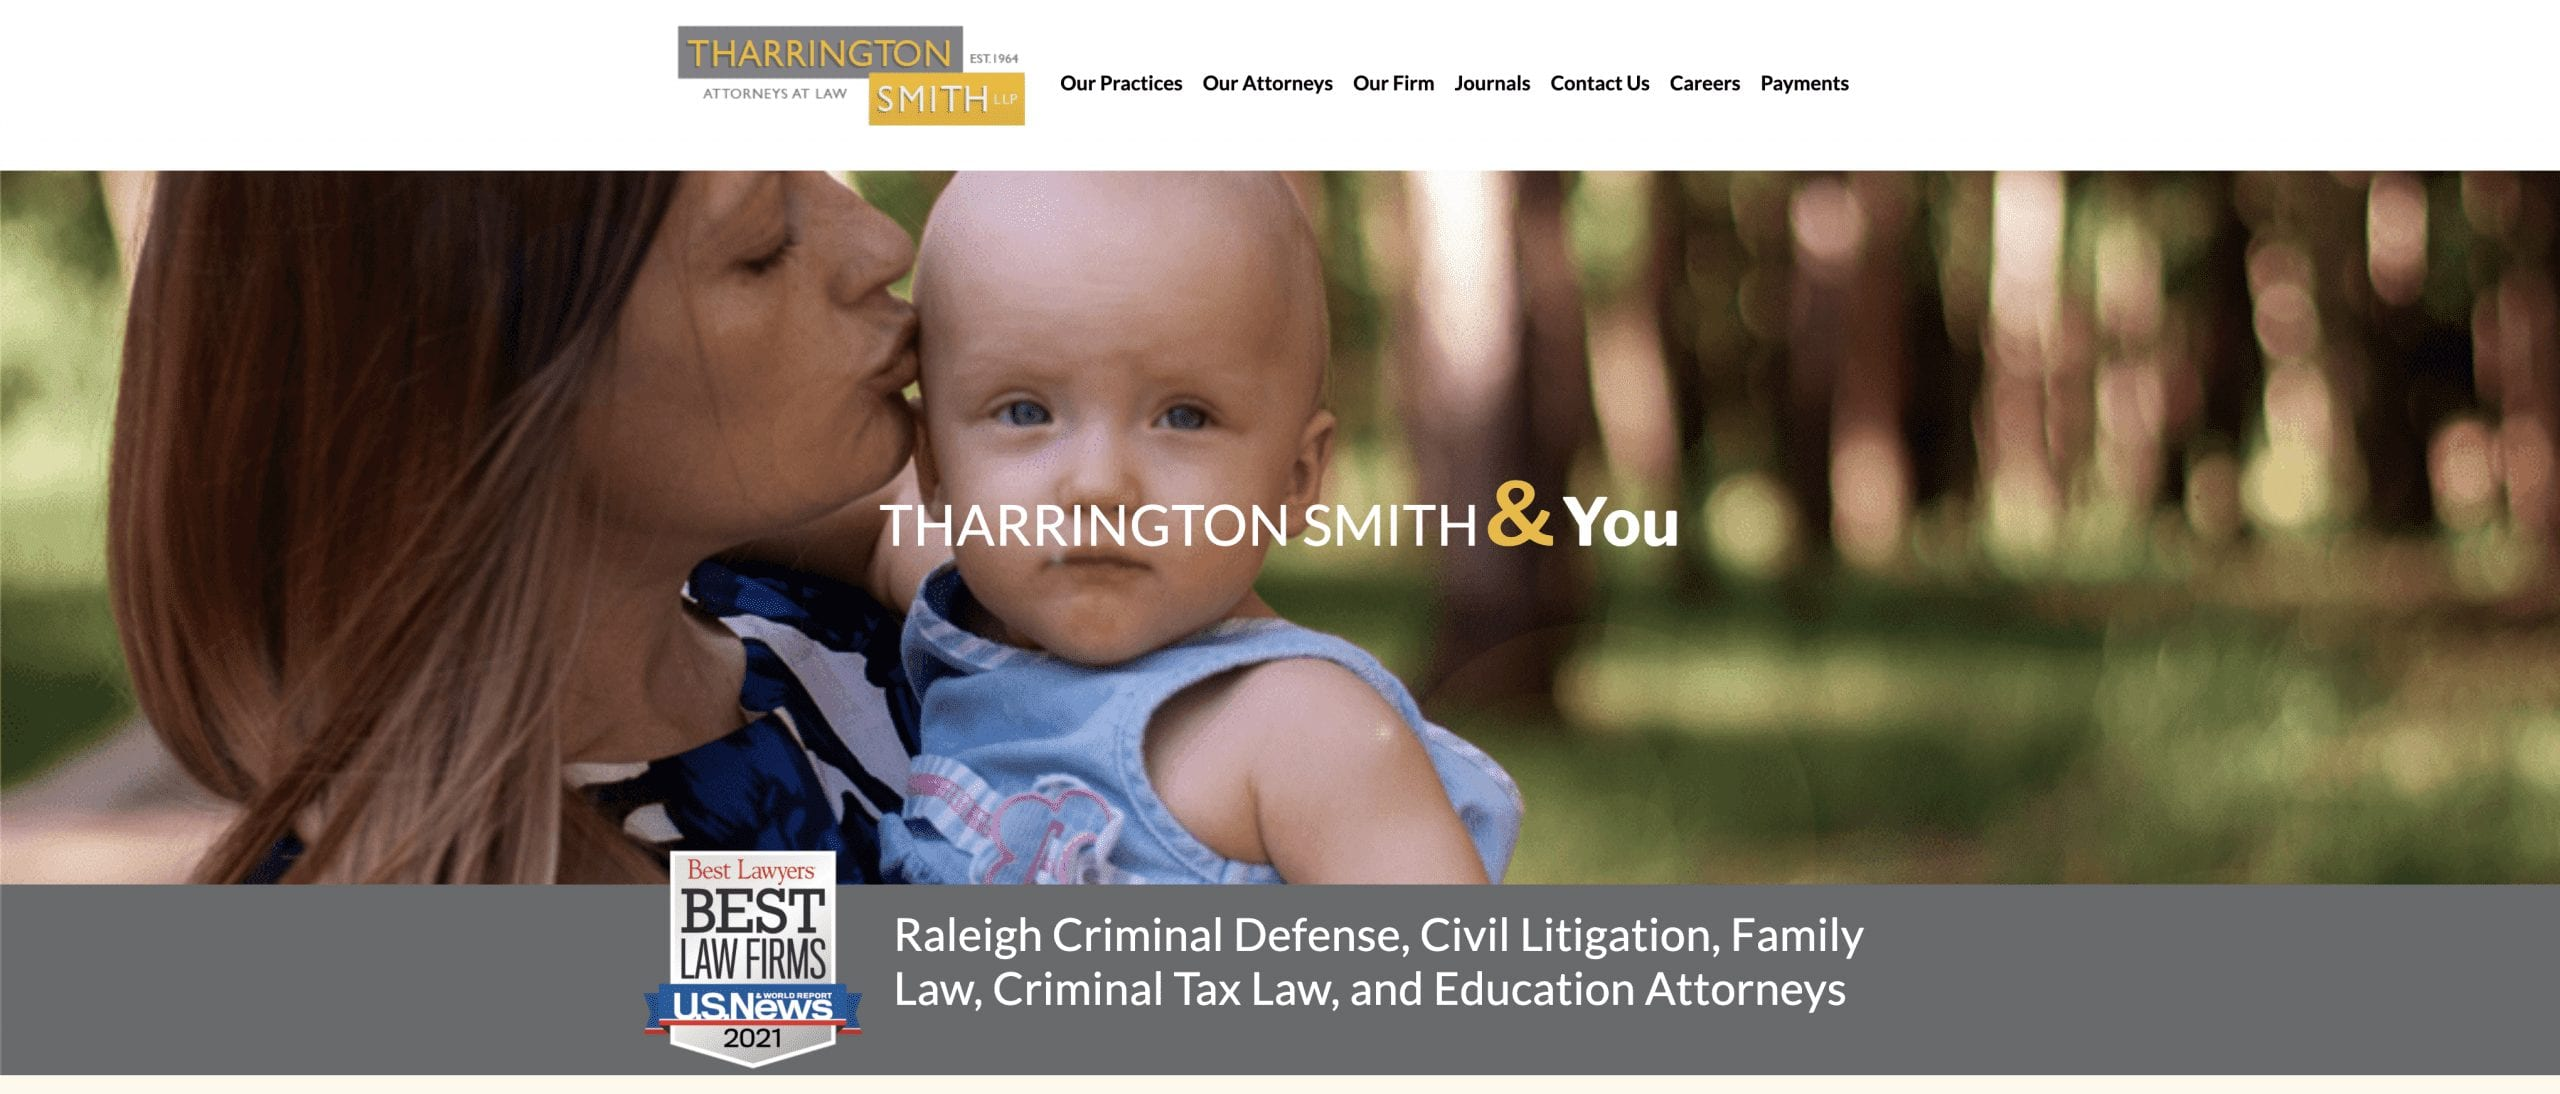 home page of the new Tharrington Smith site